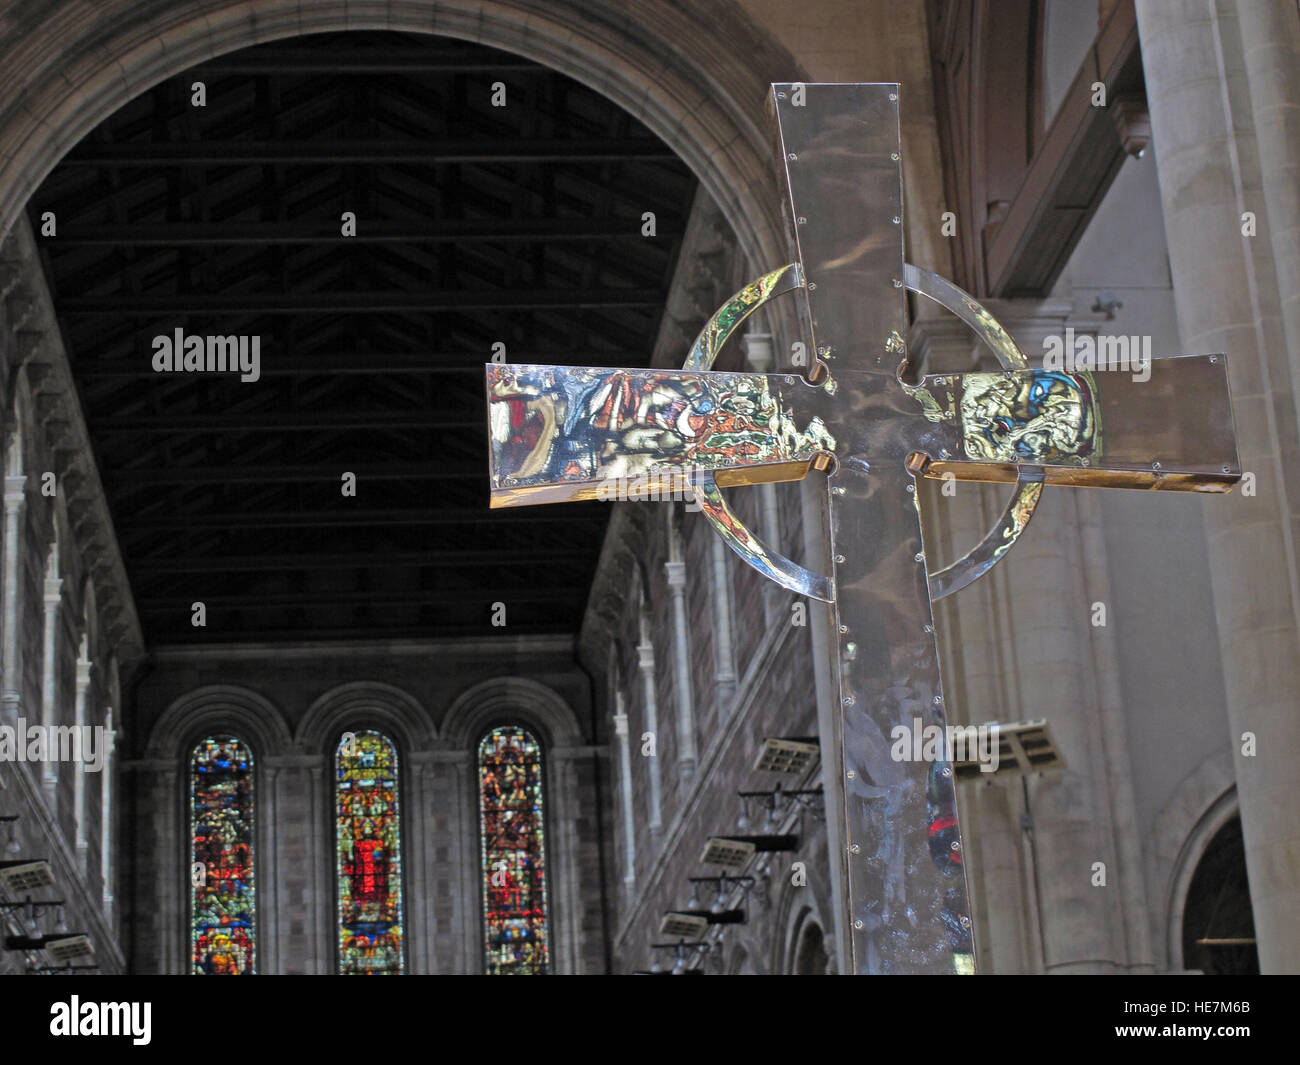 Inside,architecture,building,stone,arch,holy,St Annes,Belfast Cathedral,saint,Annes,silver cross,with,reflections,GoTonySmith,@HotpixUK,Tony,Smith,UK,GB,Great,Britain,United,Kingdom,Irish,British,Ireland,problem,with,problem with,issue with,NI,Northern,Northern Ireland,Belfast,City,Centre,Art,Artists,the,troubles,The Troubles,Good Friday Agreement,Peace,honour,painting,wall,walls,tribute,republicanism,Fight,Justice,West,Beal,feirste,martyrs,social,tour,tourism,tourists,urban,six,counties,6,backdrop,county,Antrim,Quarter,Buy Pictures of,Buy Images Of,Images of,Stock Images,Tony Smith,United Kingdom,Great Britain,British Isles